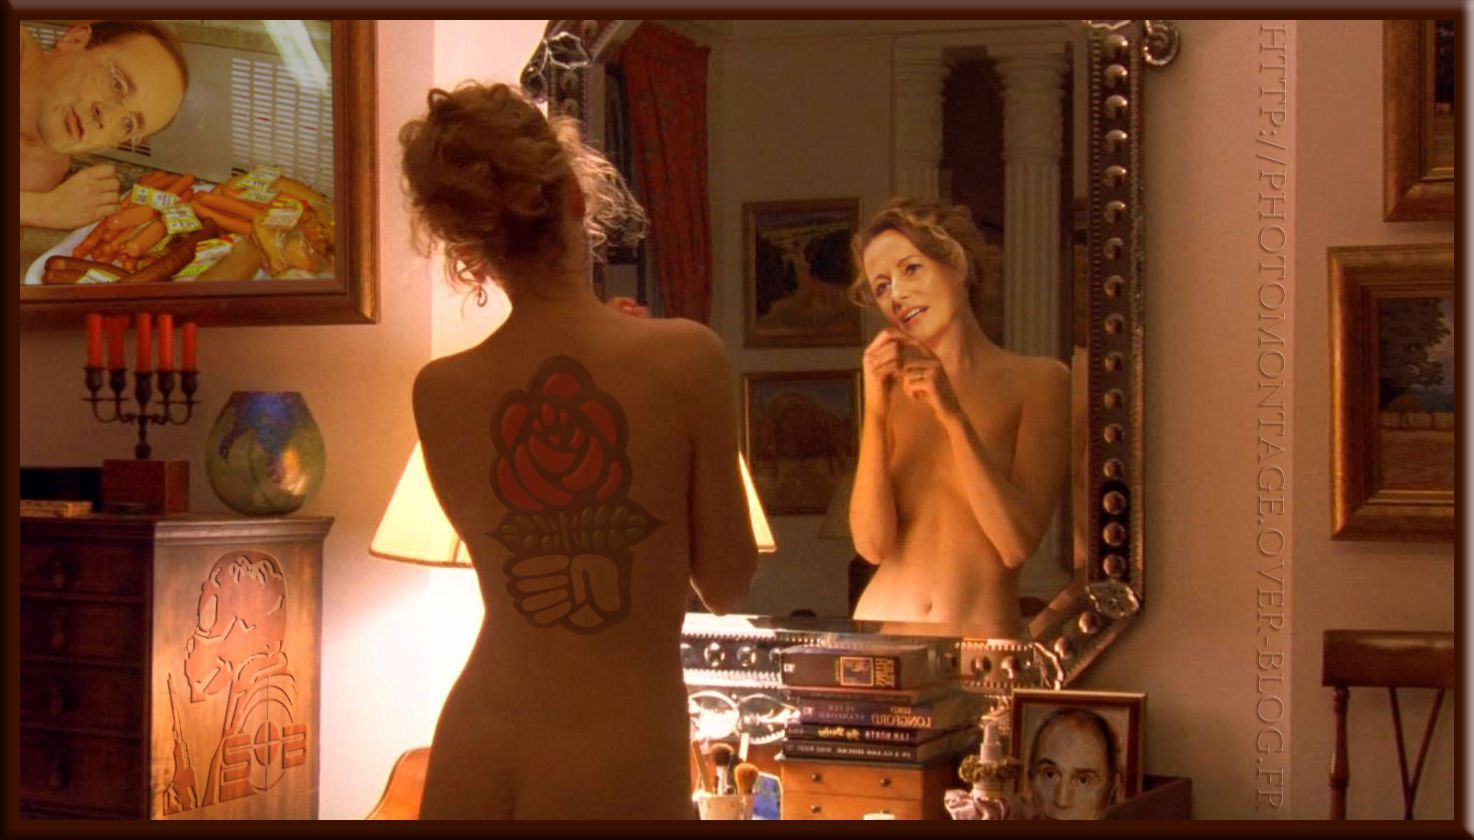 SEGOLENE-WIDE-SHUT-4.jpg